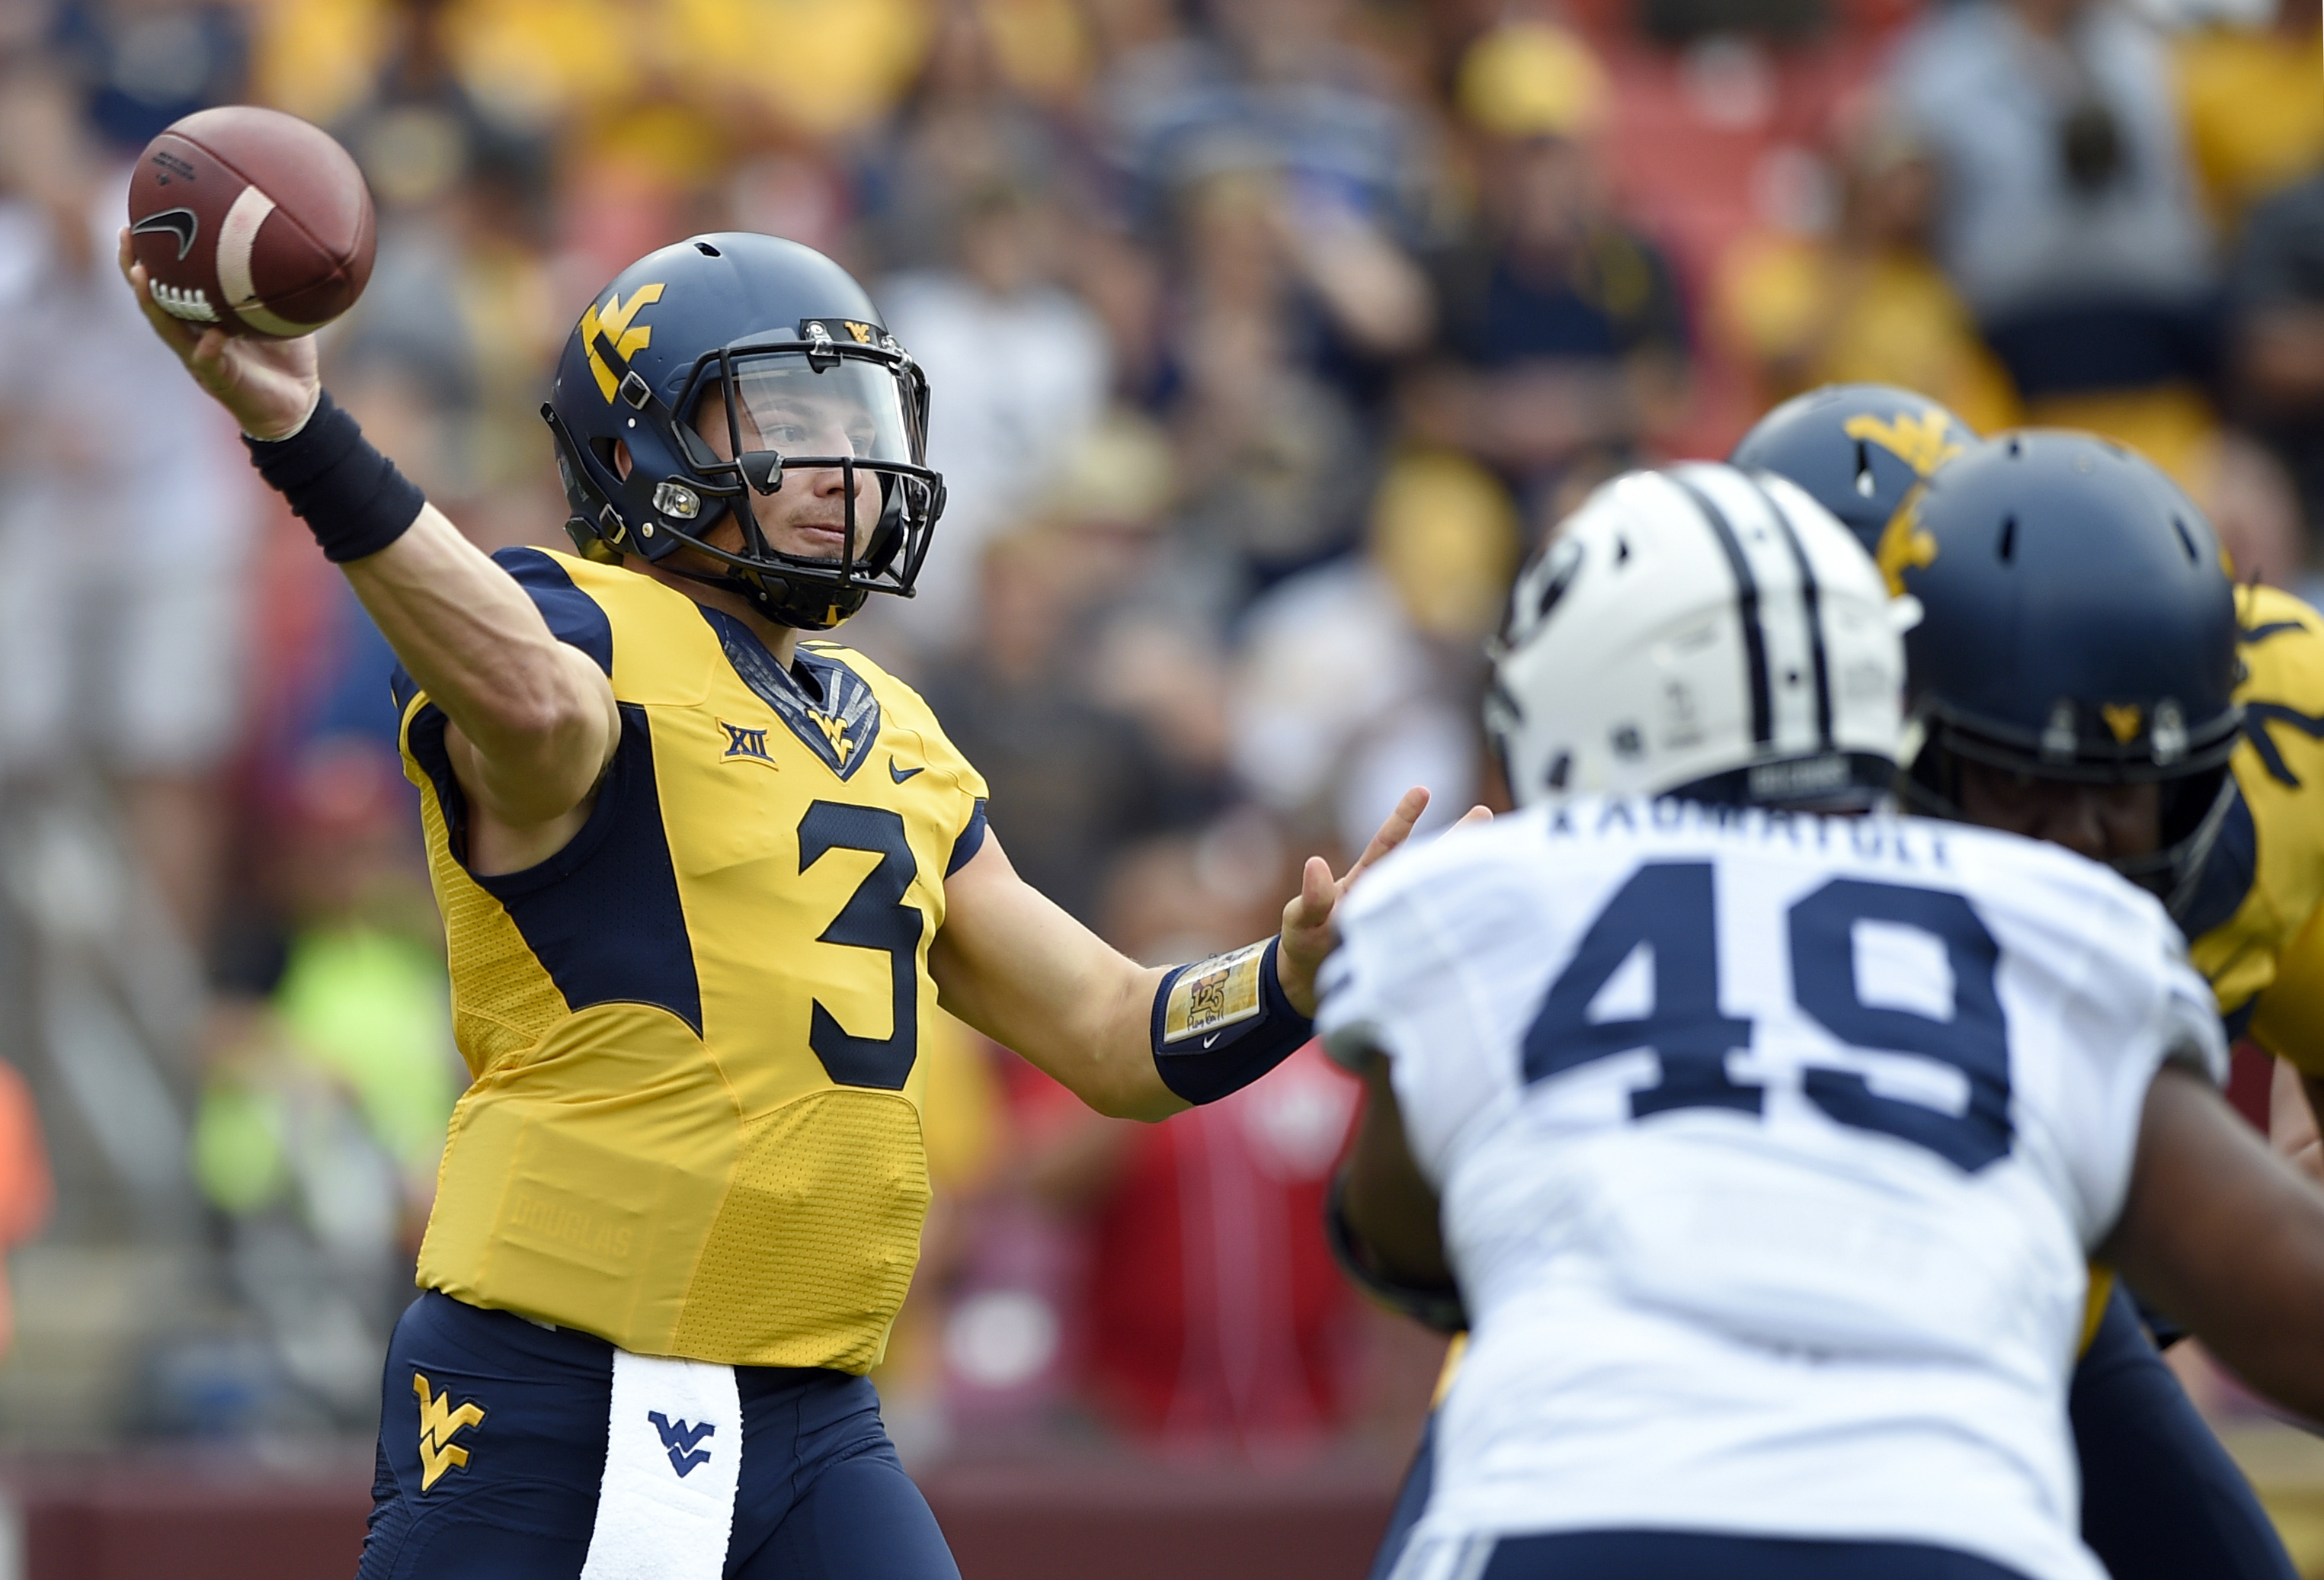 FILE - In this Sept. 24, 2016, file photo, West Virginia quarterback Skyler Howard (3) passes while pressured by BYU defensive lineman Moses Kaumatule (49) during the first half of an NCAA college football game Landover, Md. West Virginia has this week of